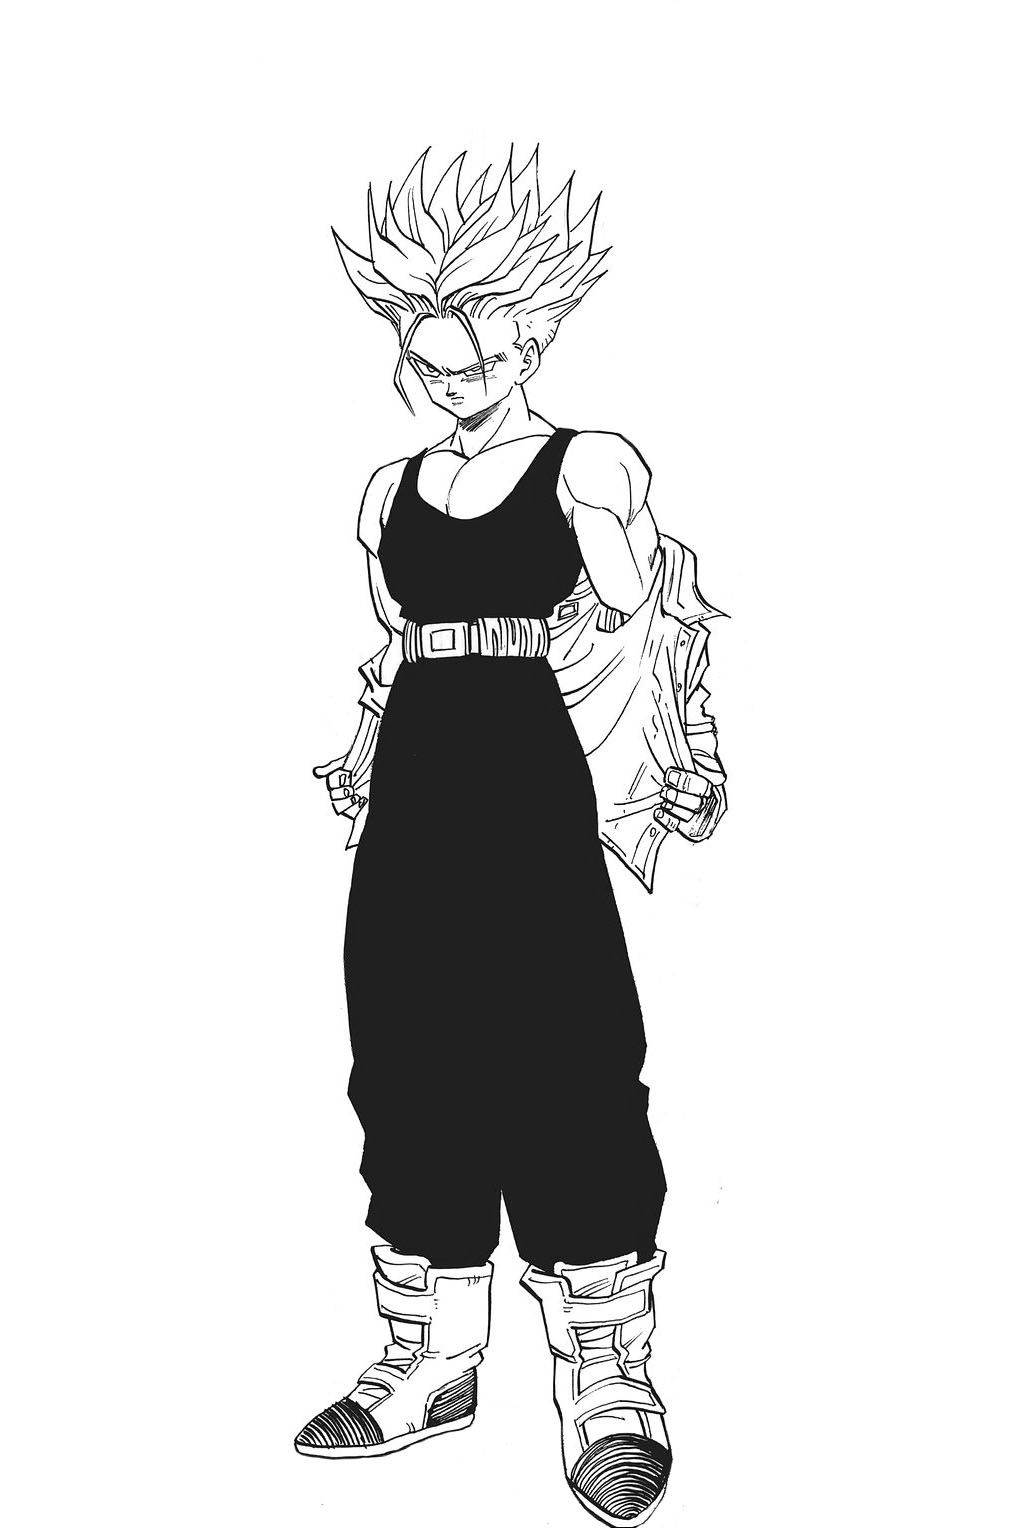 Super saiyan future trunks the purple haired man from - Dessin de dragon ball ...